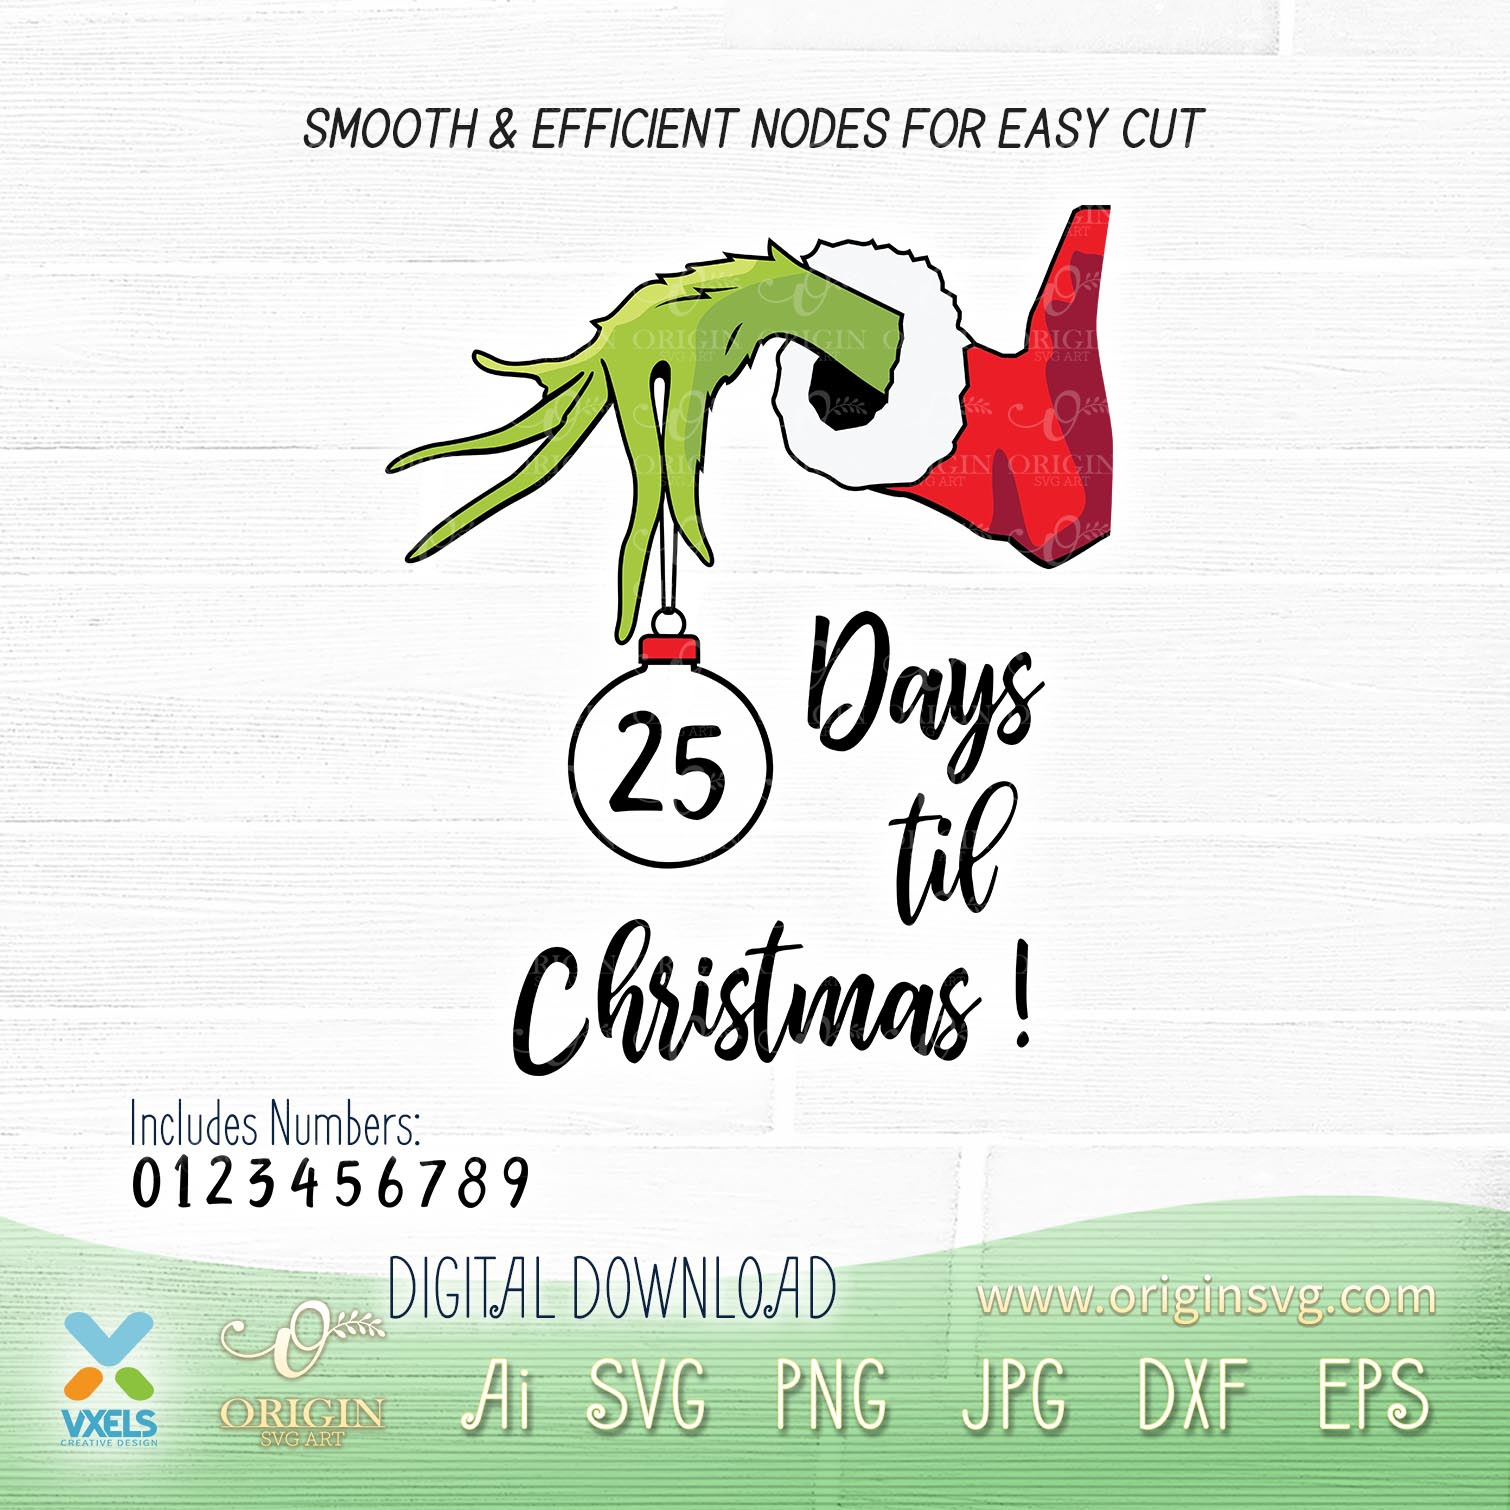 Days Til Christmas Countdown Grinch Hand Holding Ornament Svg The image is png format and has been processed into transparent background by ps tool. days til christmas countdown grinch